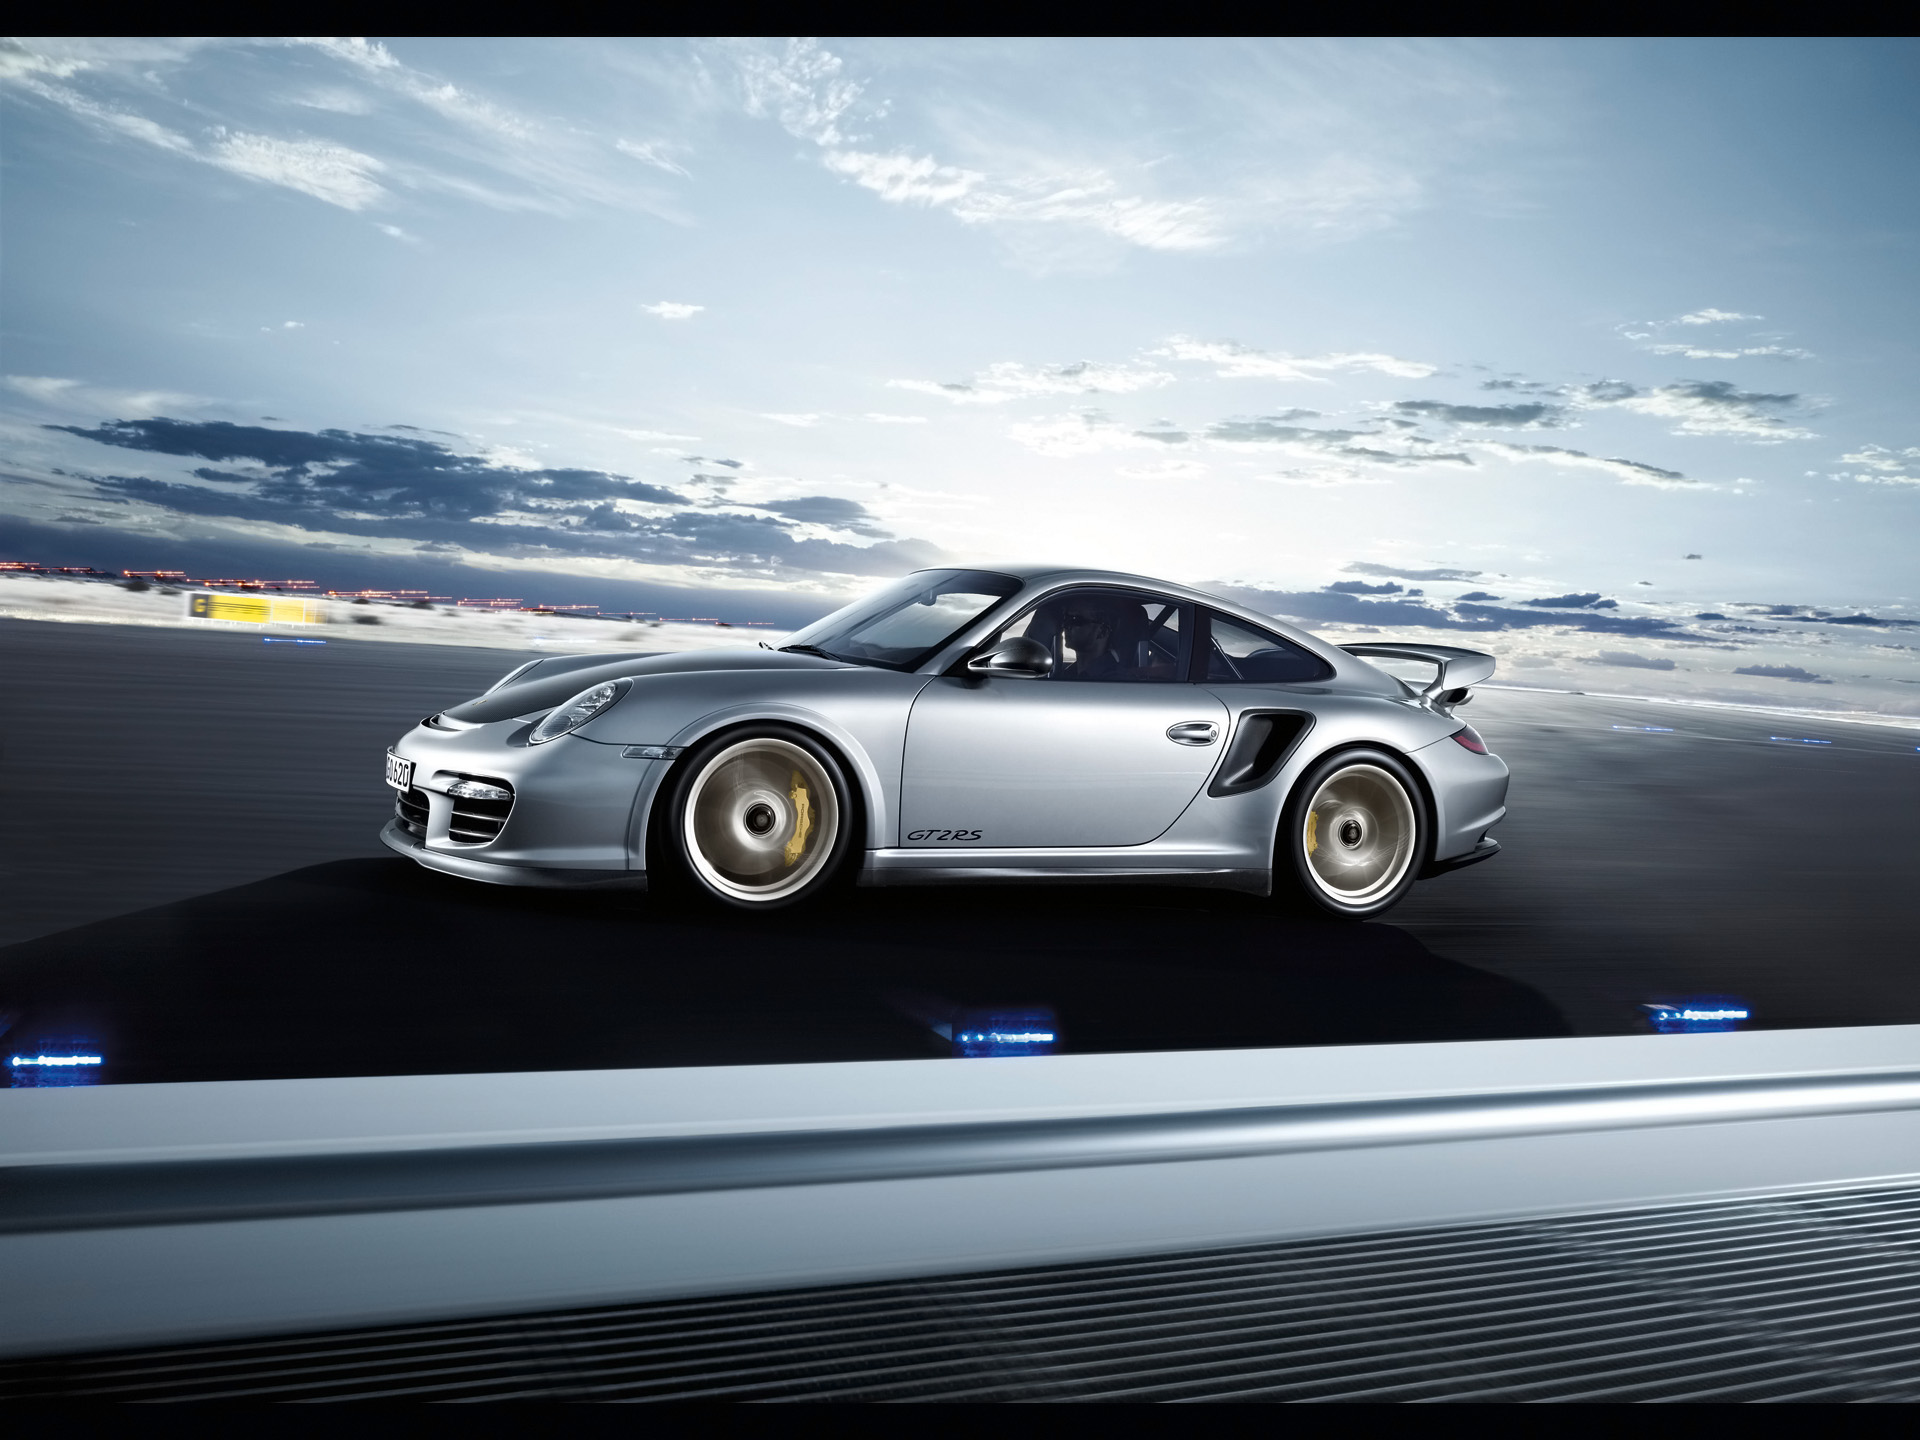 2011 Porsche 911 Gt2 Rs Wallpapers 2011 Porsche 911 Gt2